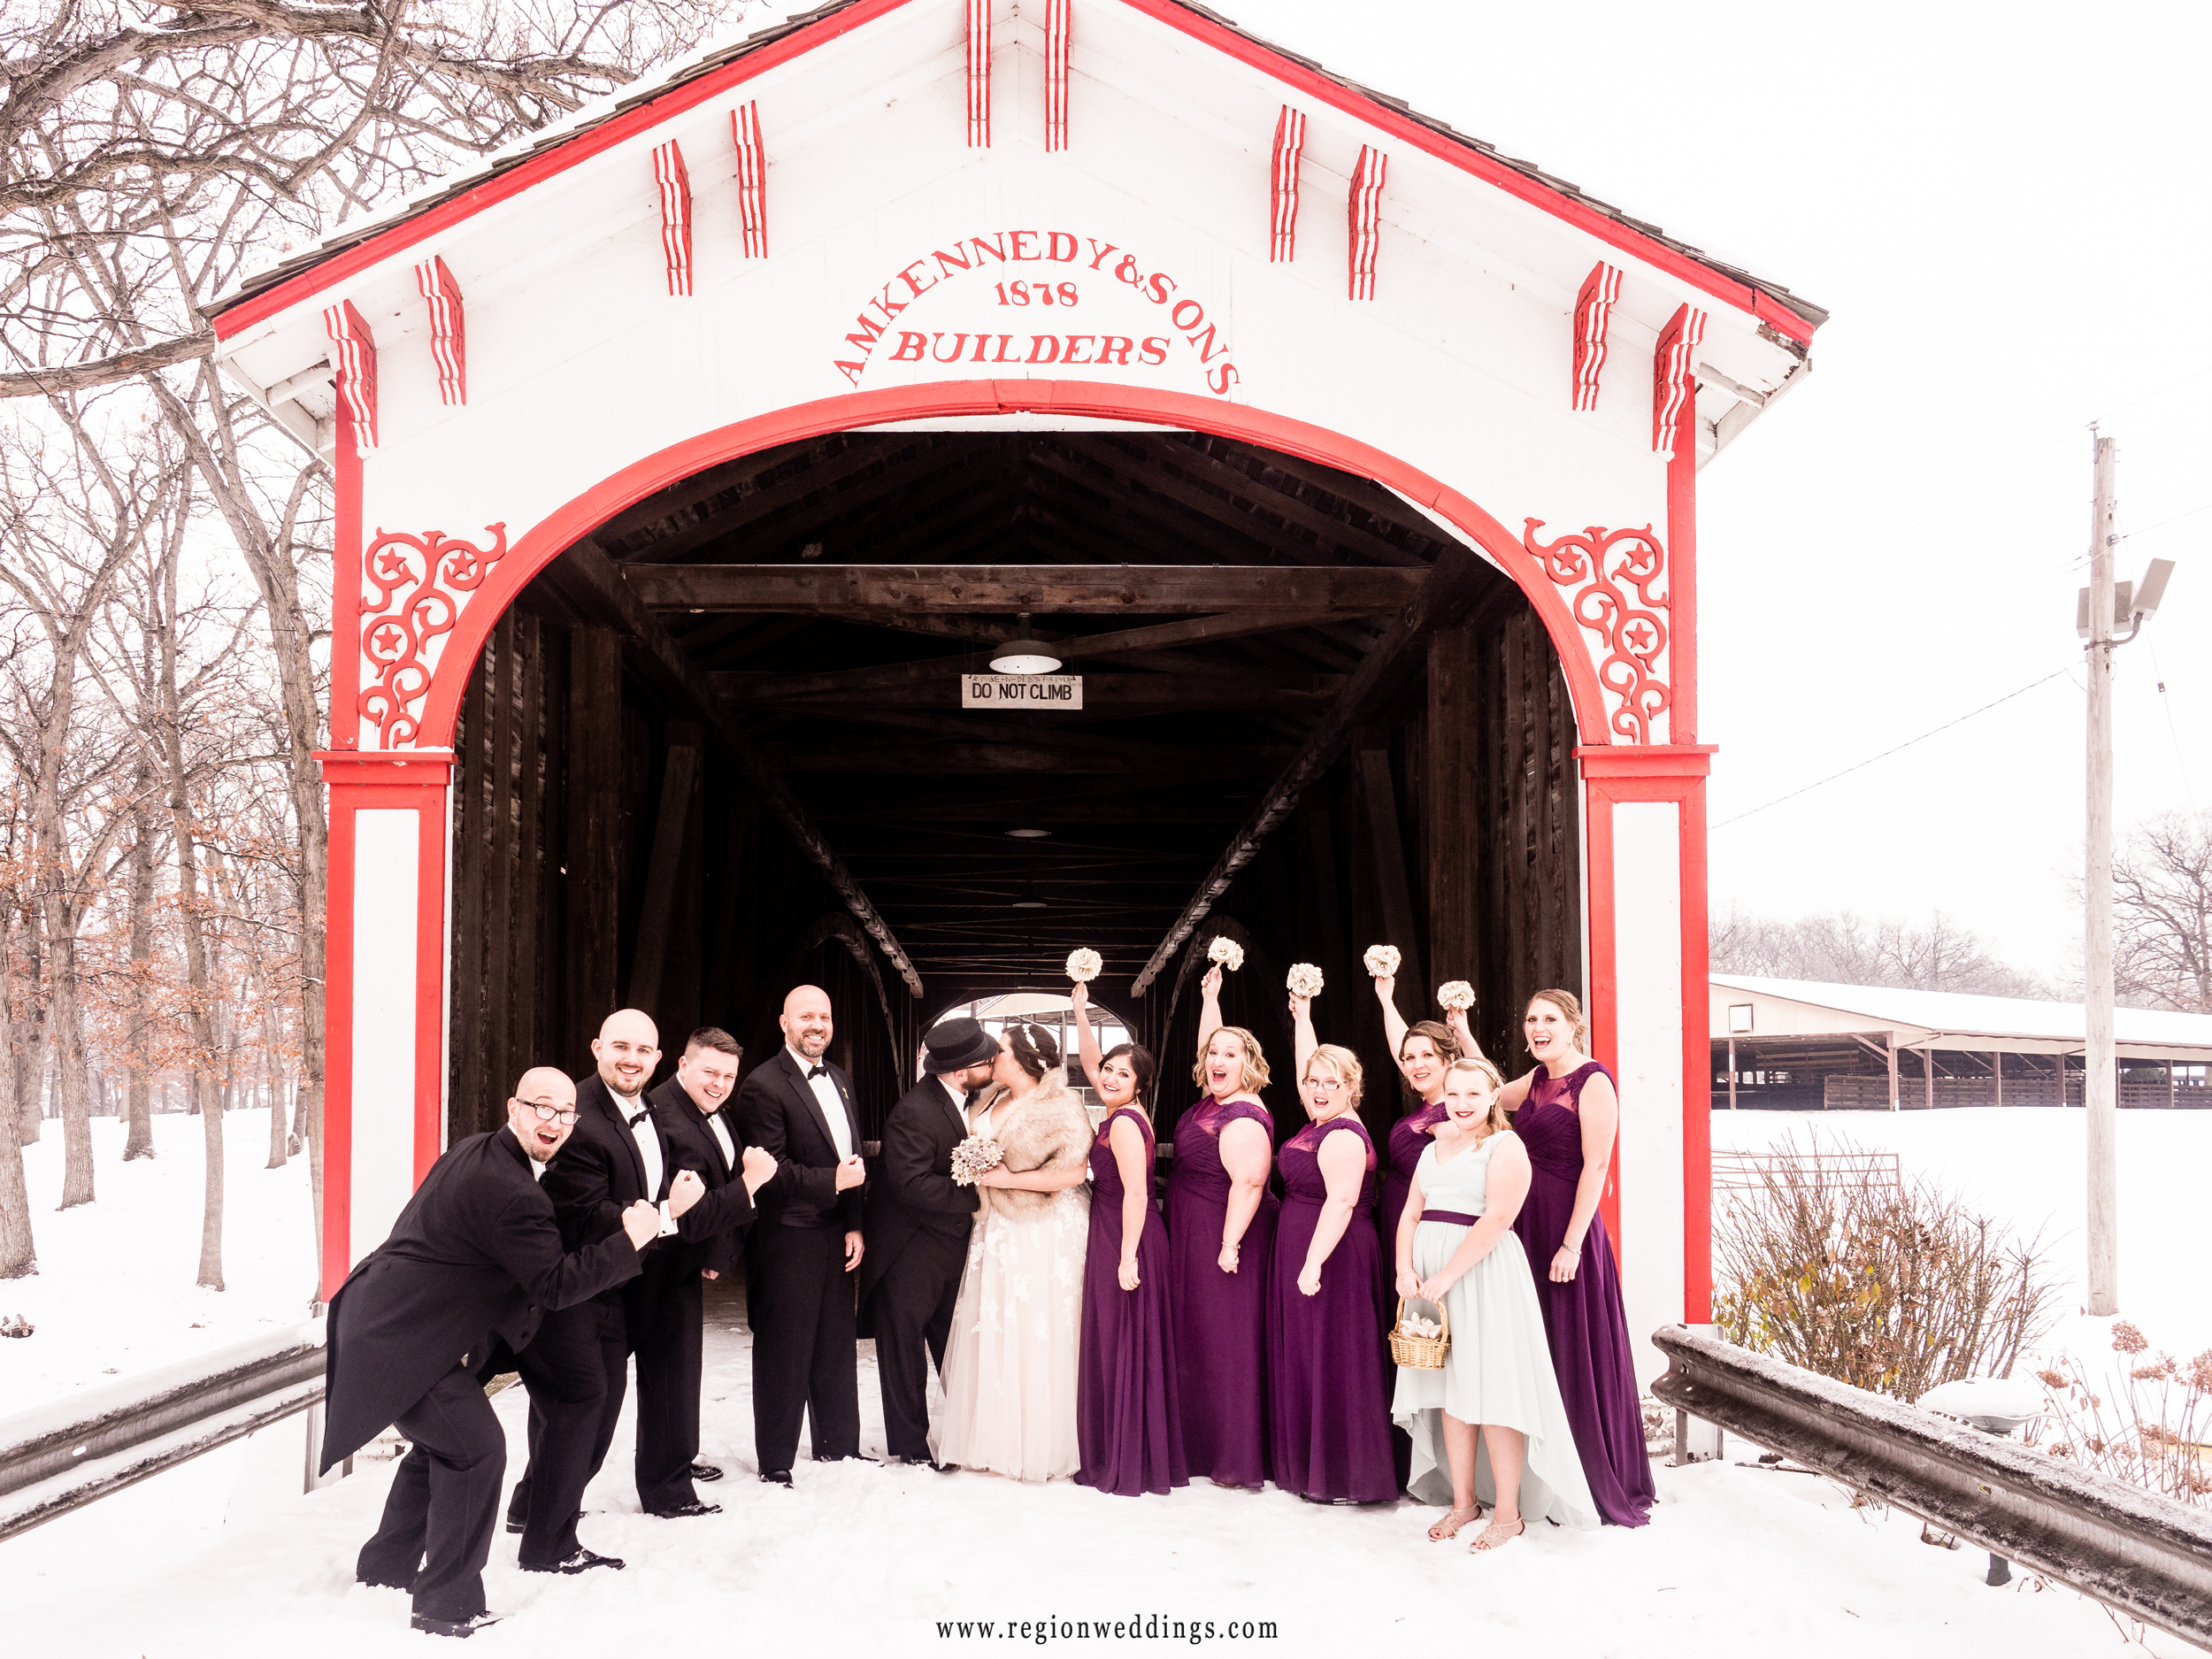 Wedding party group photo in the snow.